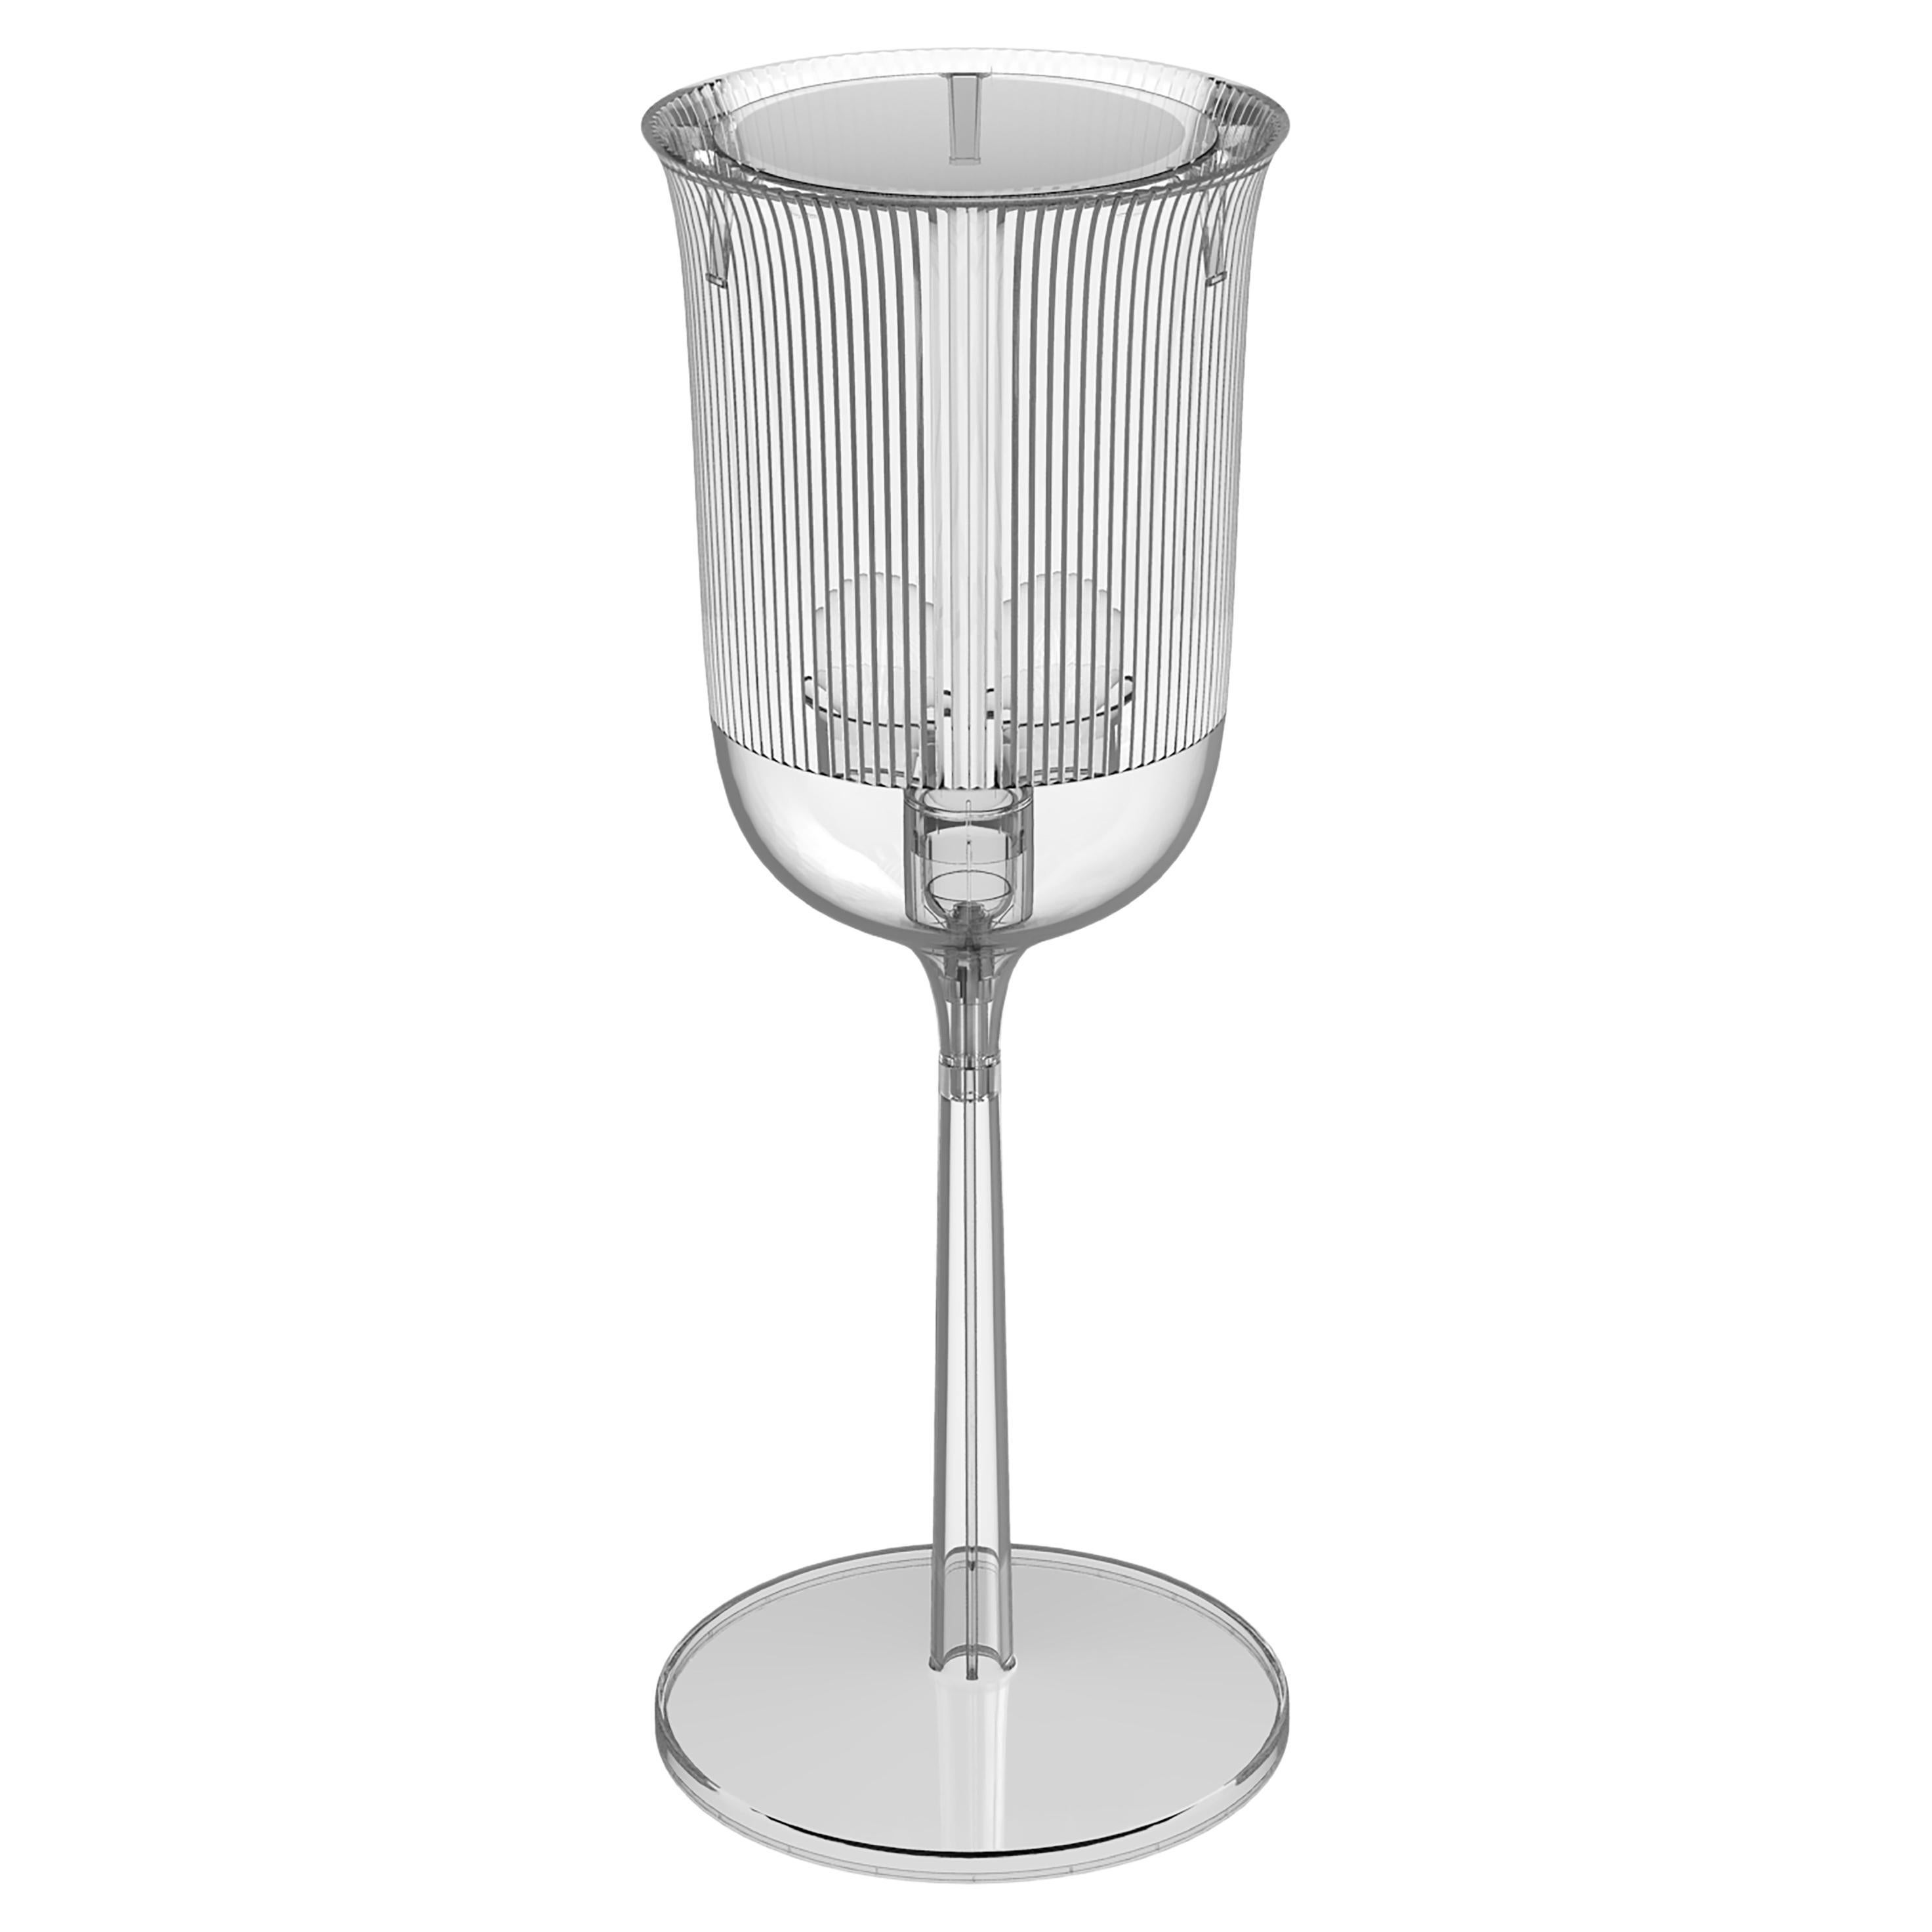 Goblet Table Lamp Small Transparent, Designed by Stefano Giovannoni